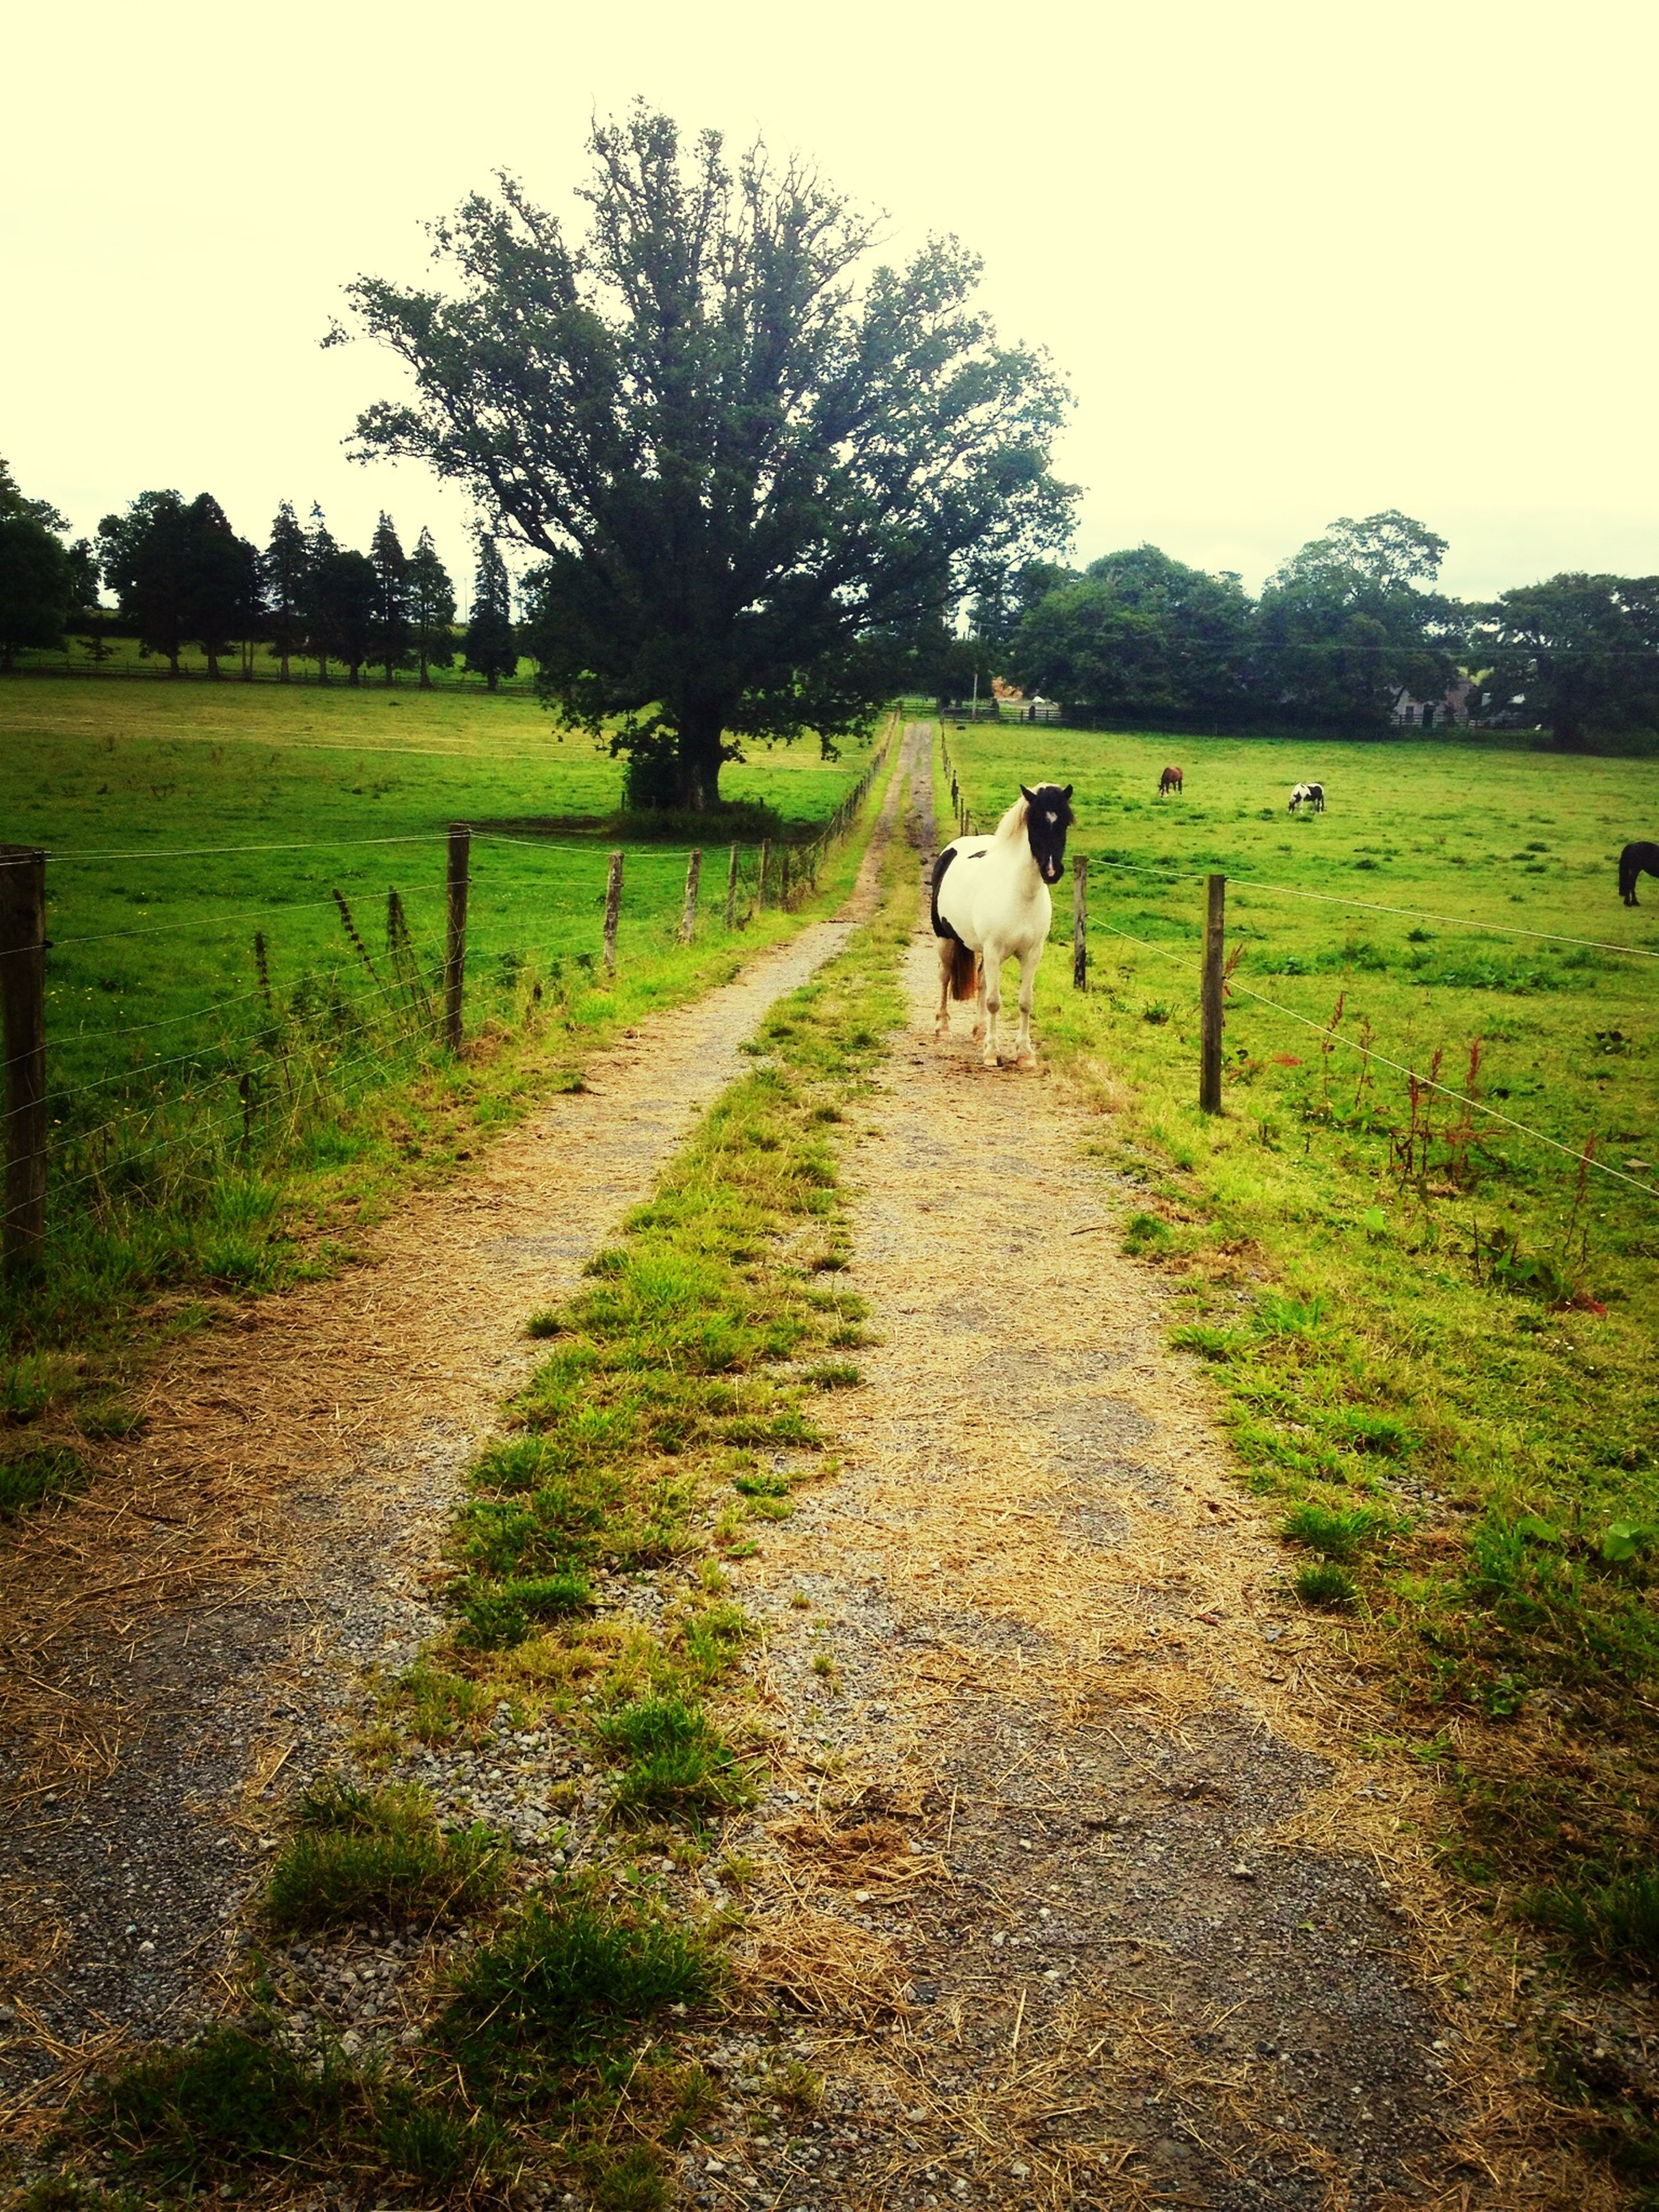 domestic animals, grass, animal themes, field, mammal, landscape, one animal, grassy, livestock, the way forward, rural scene, pets, dog, nature, walking, full length, tranquility, pasture, sky, tranquil scene